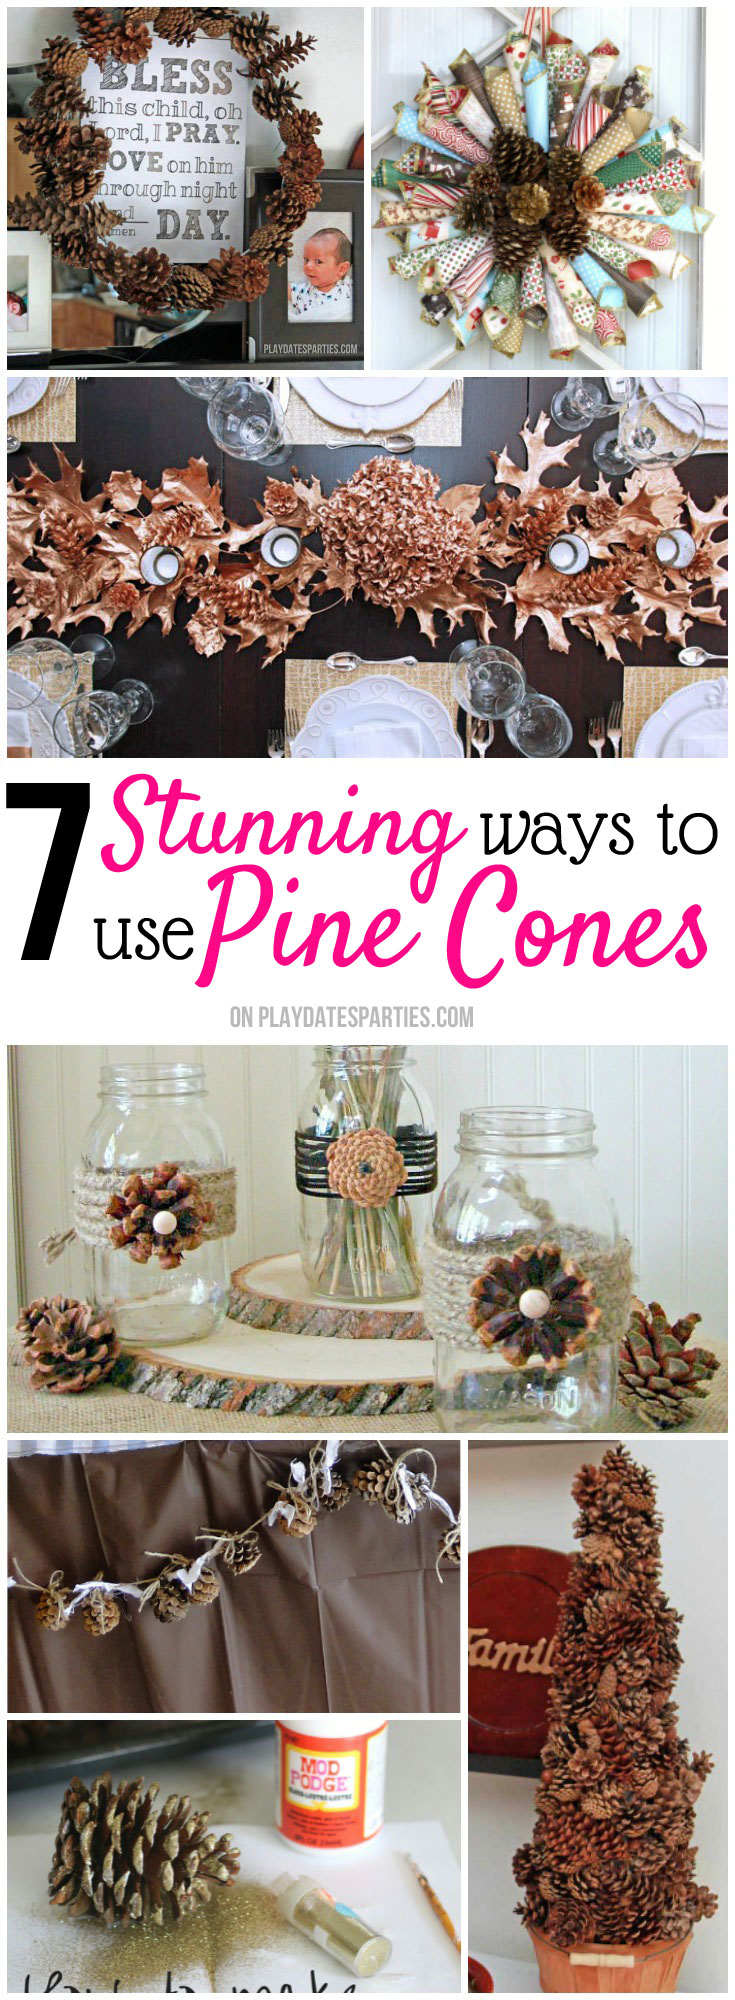 Pine cones are the BEST for decorating in fall and winter. They are cheap, easy to find, and work for any style. Take a look at these 7 stunning ways to decorate with pine cones and make the most of what mother nature has to offer.